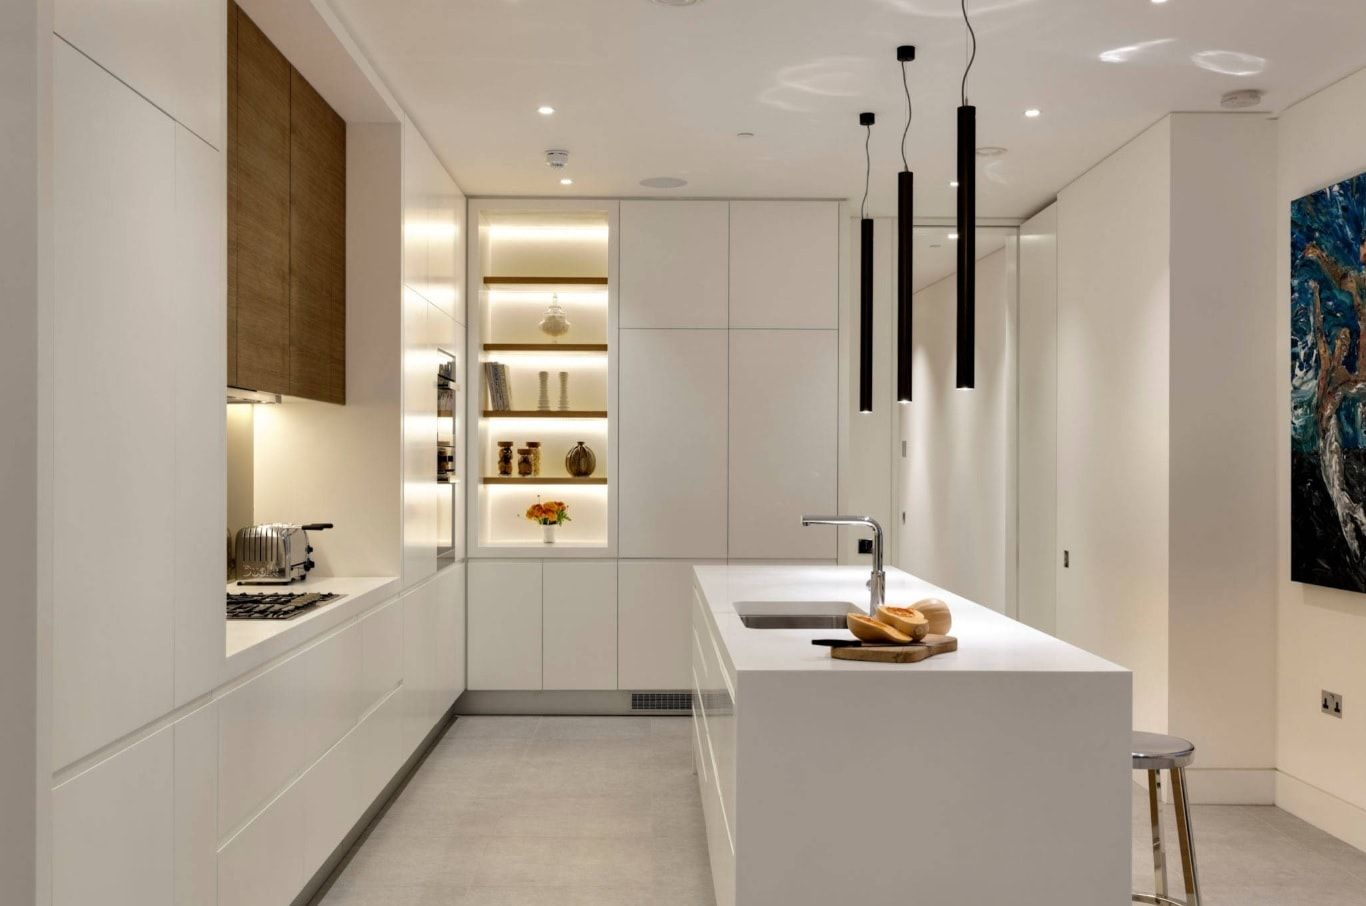 Small minimalistic hi-tech kitchen with LED-lighting in cupboards and large cooking island